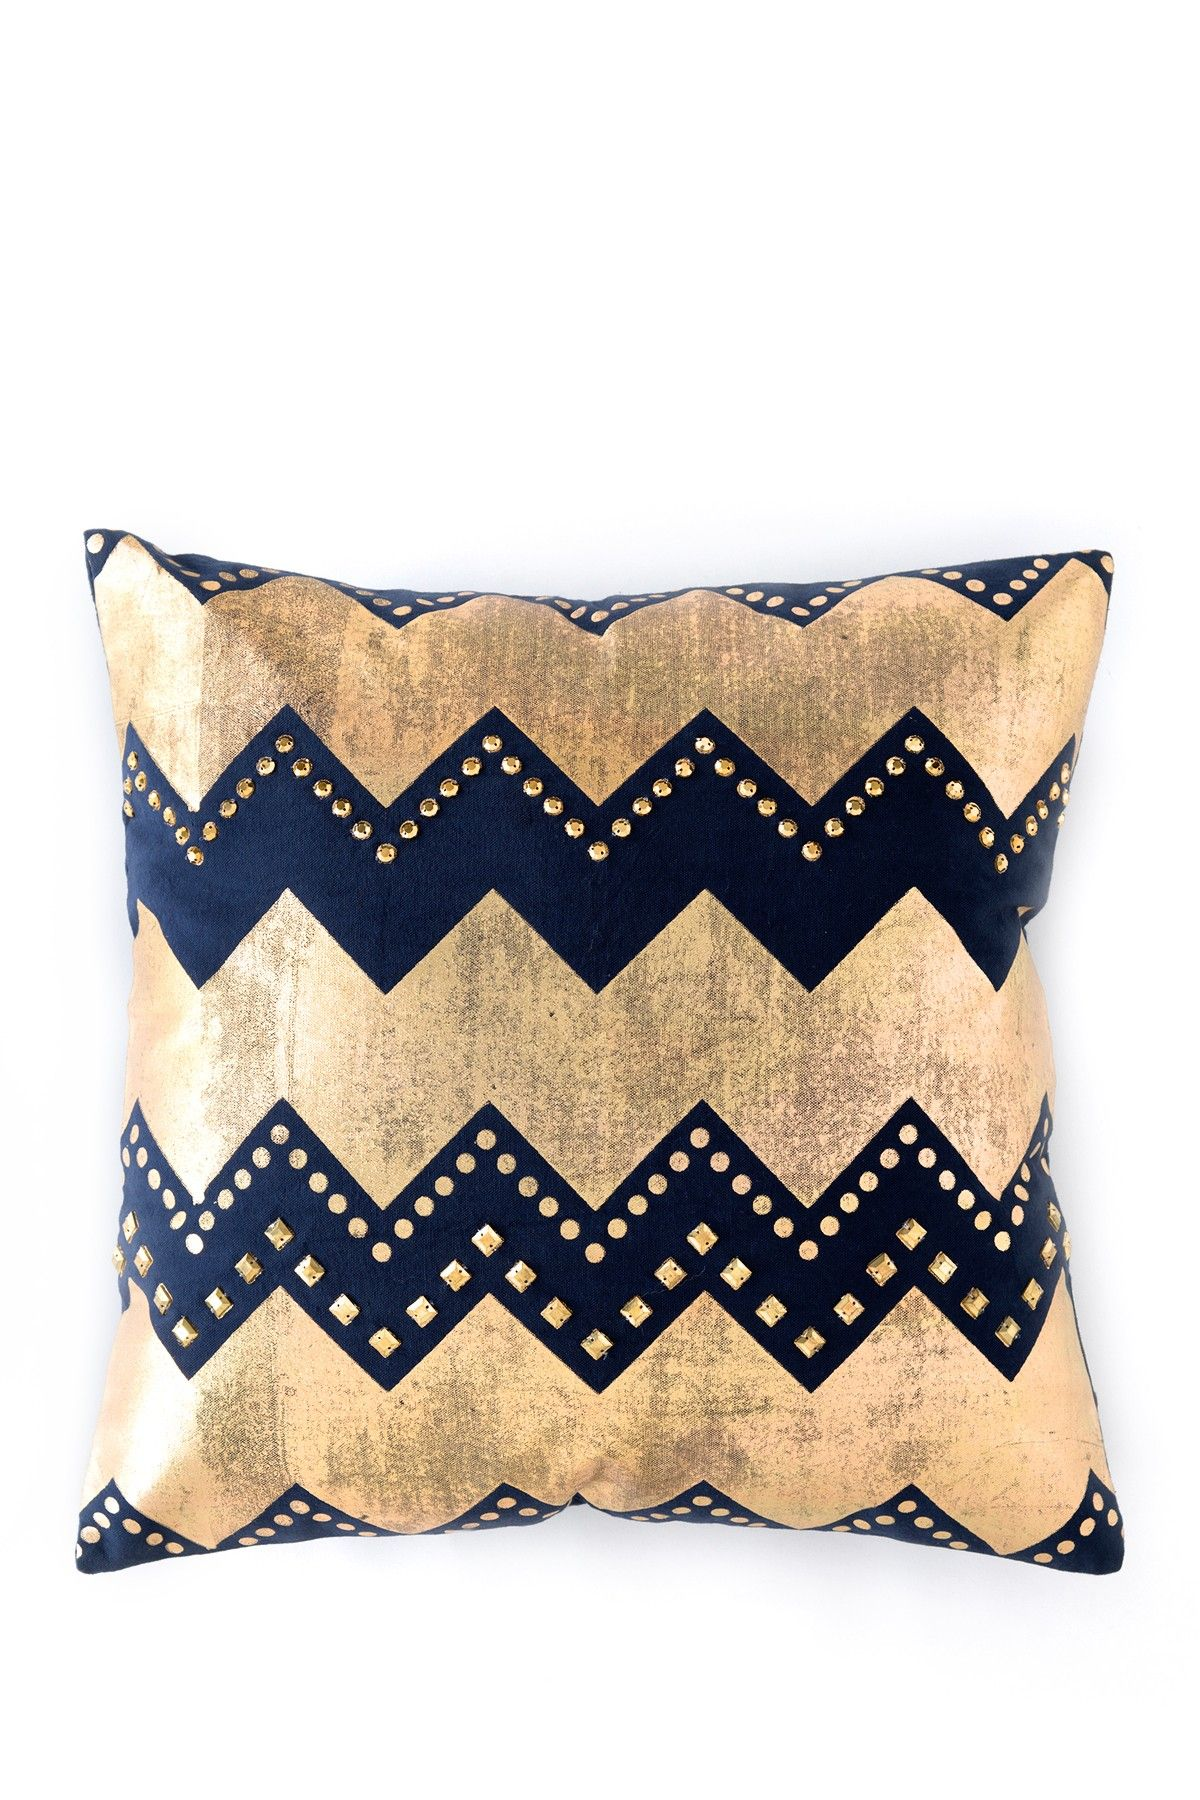 Gold + navy zigzag // love the pattern